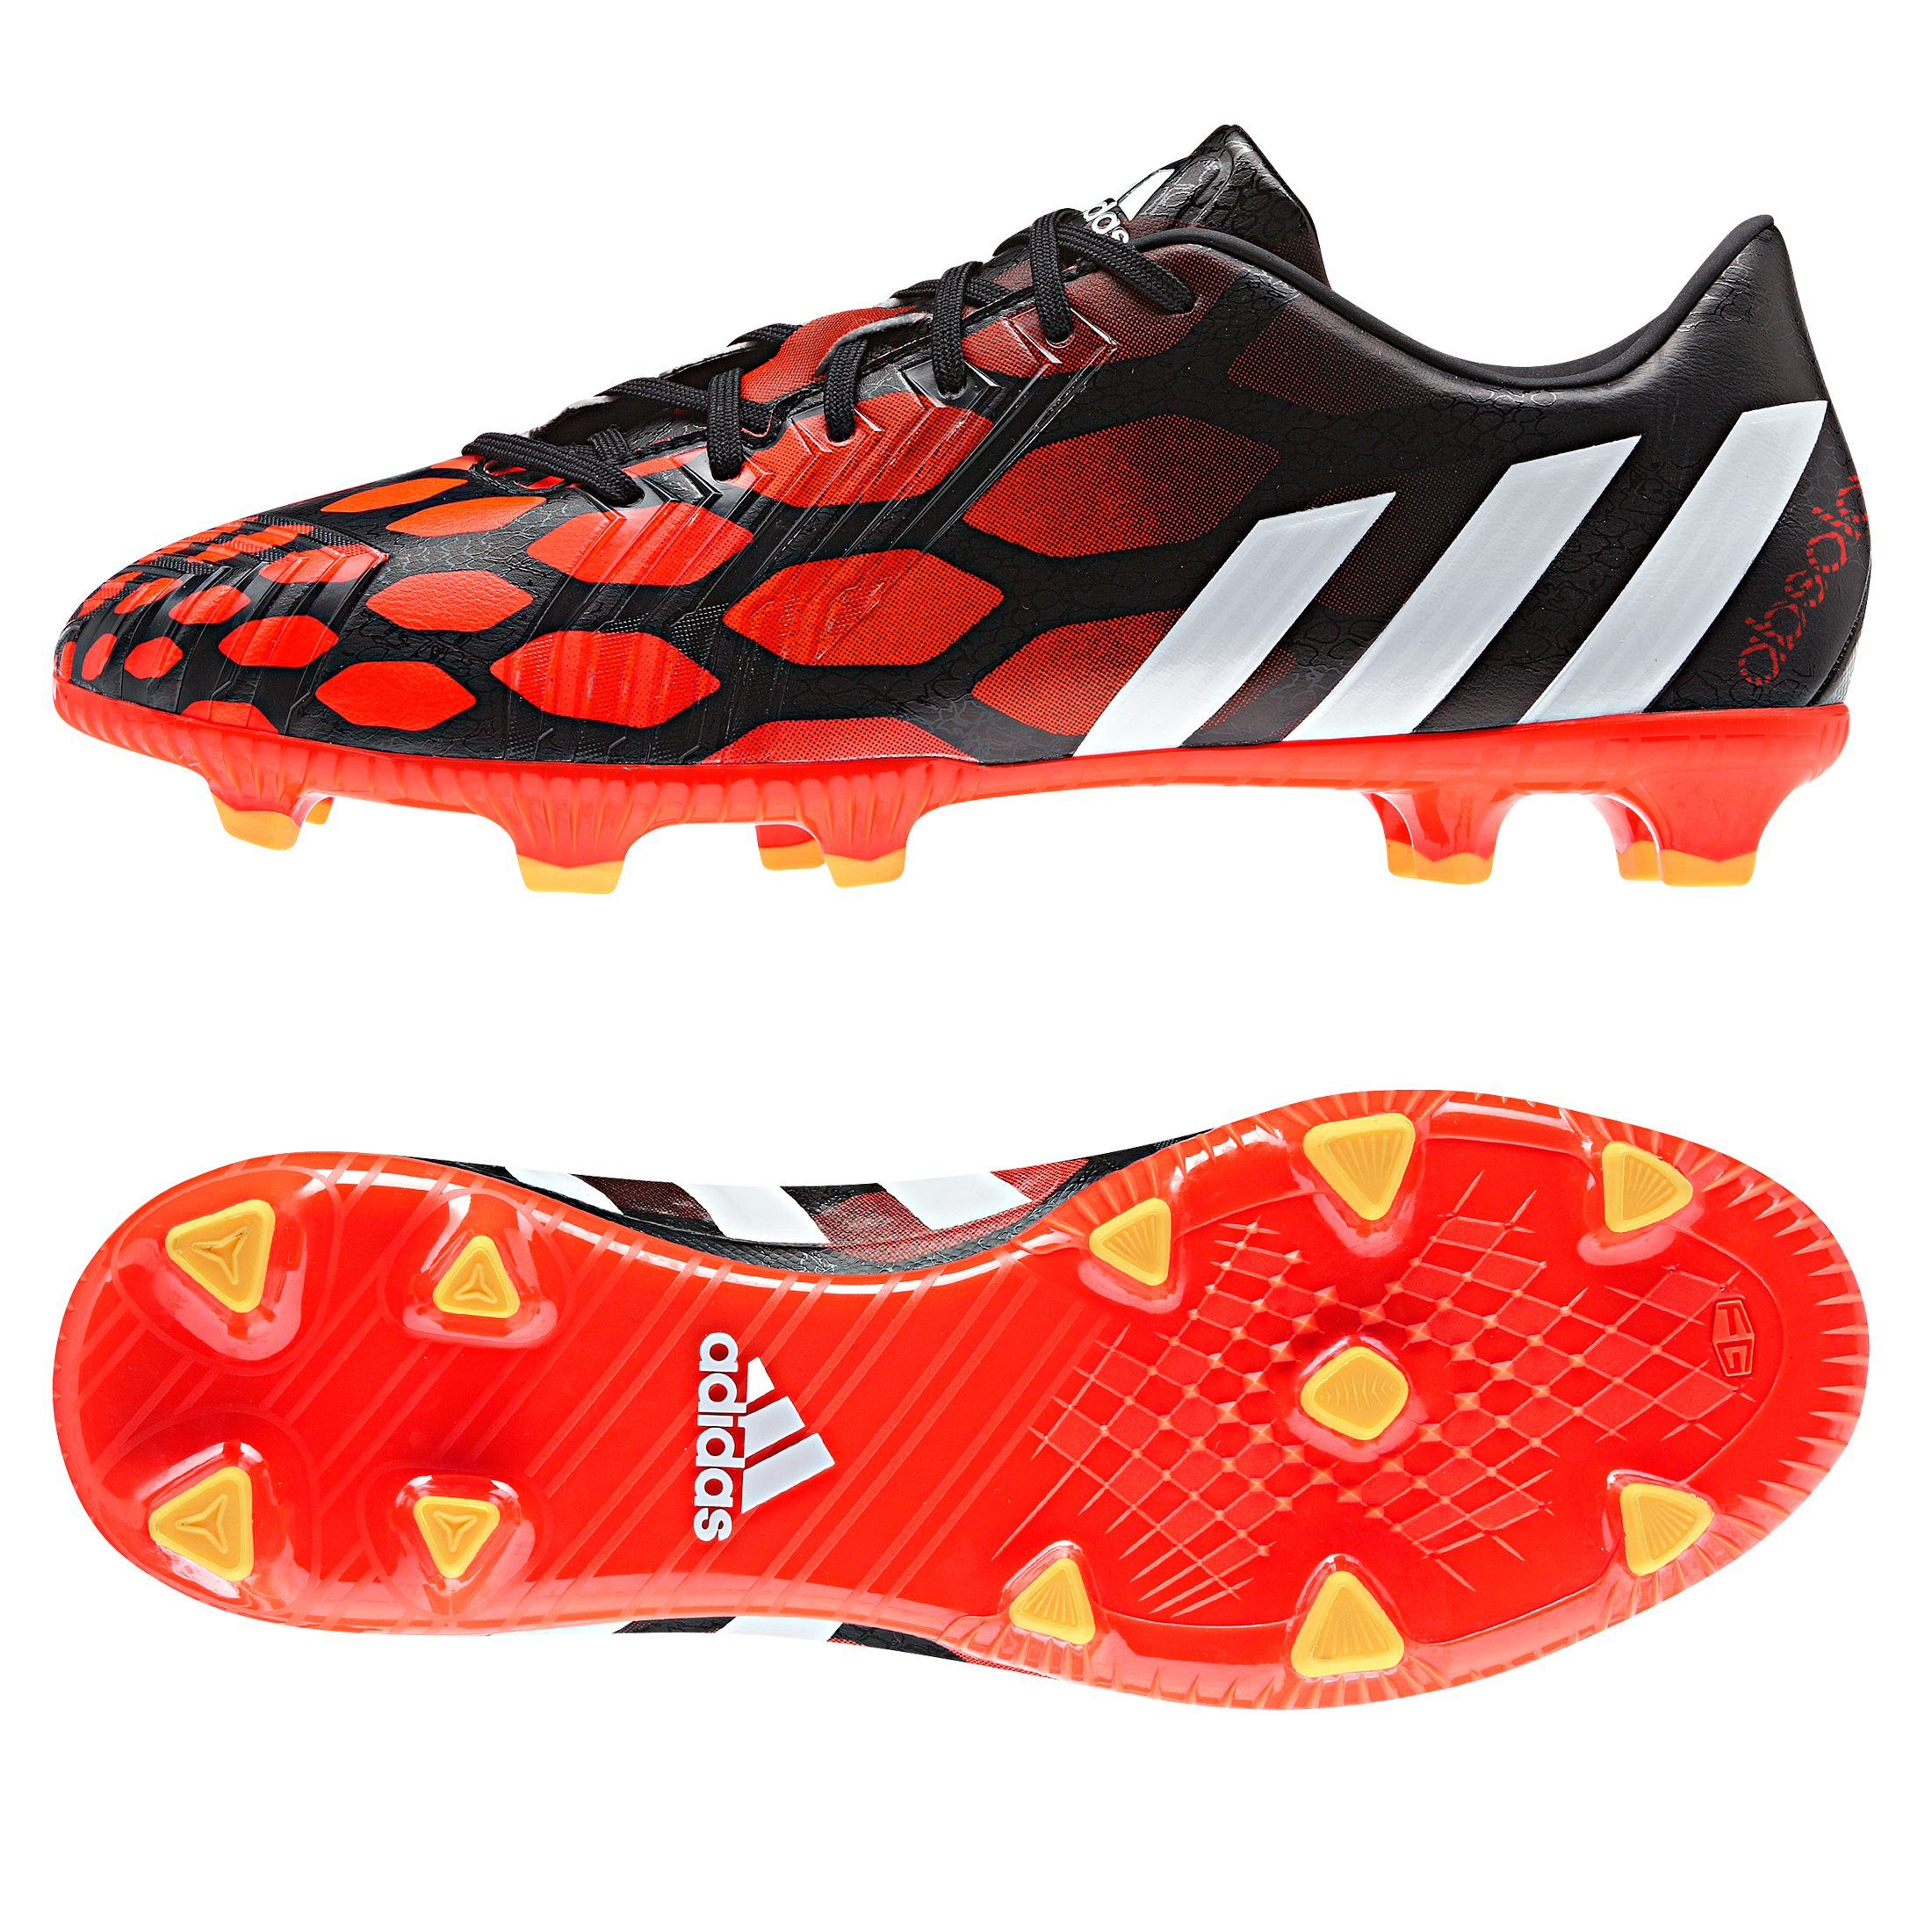 Adidas Predator Absolado Instinct Firm Ground Football Boots Black